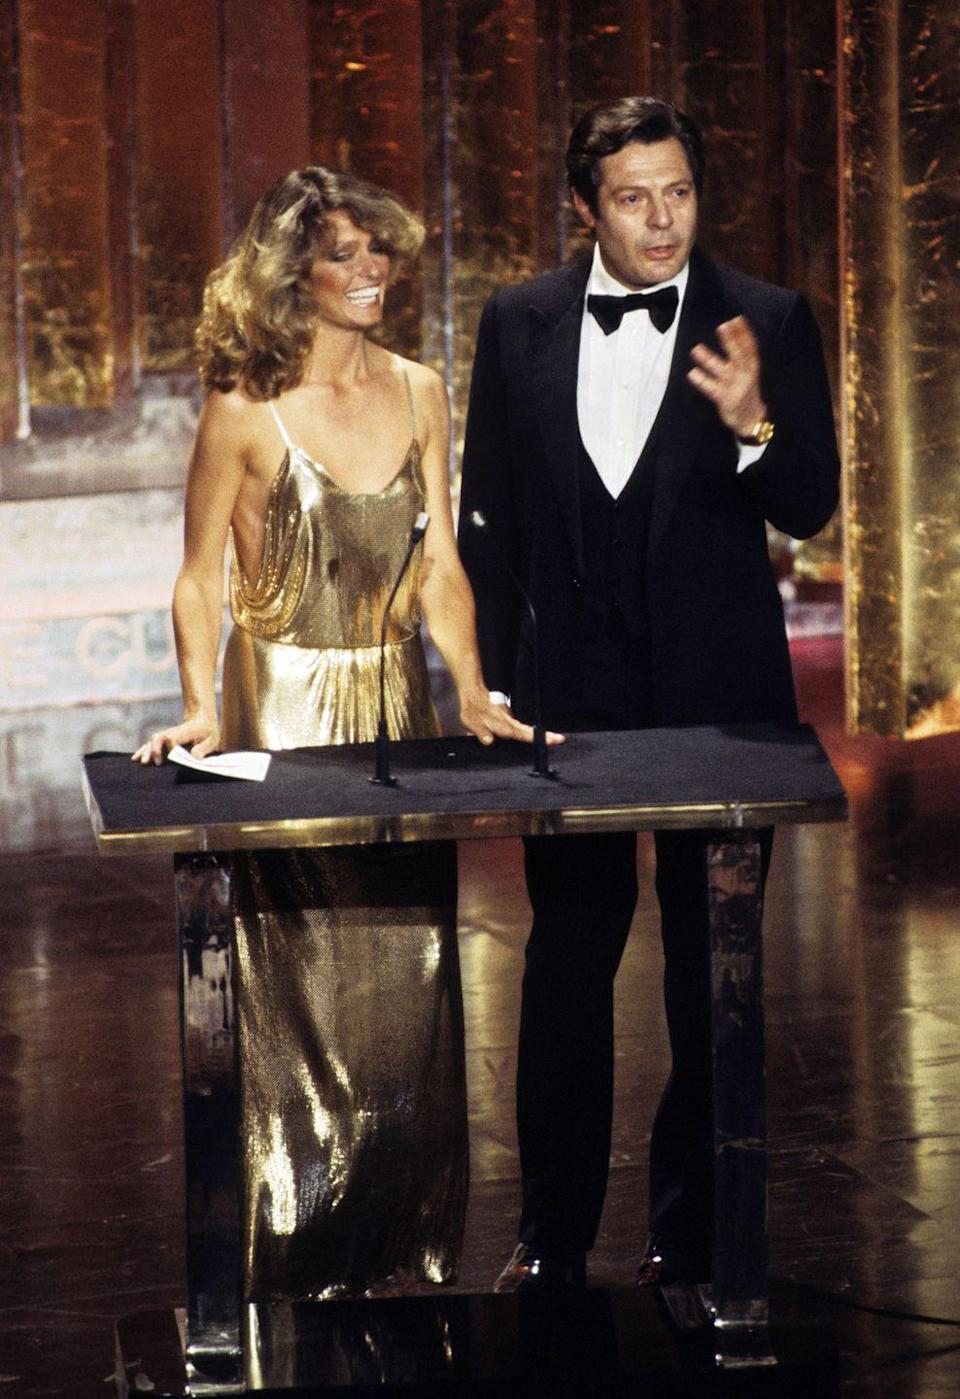 <p>The same year she graced every guy's bedroom wall in a fiery-red one-piece, the actress stunned at the ceremony in a metallic gold Stephen Burrow dress. The resemblance to a literal Oscar award is uncanny. </p>